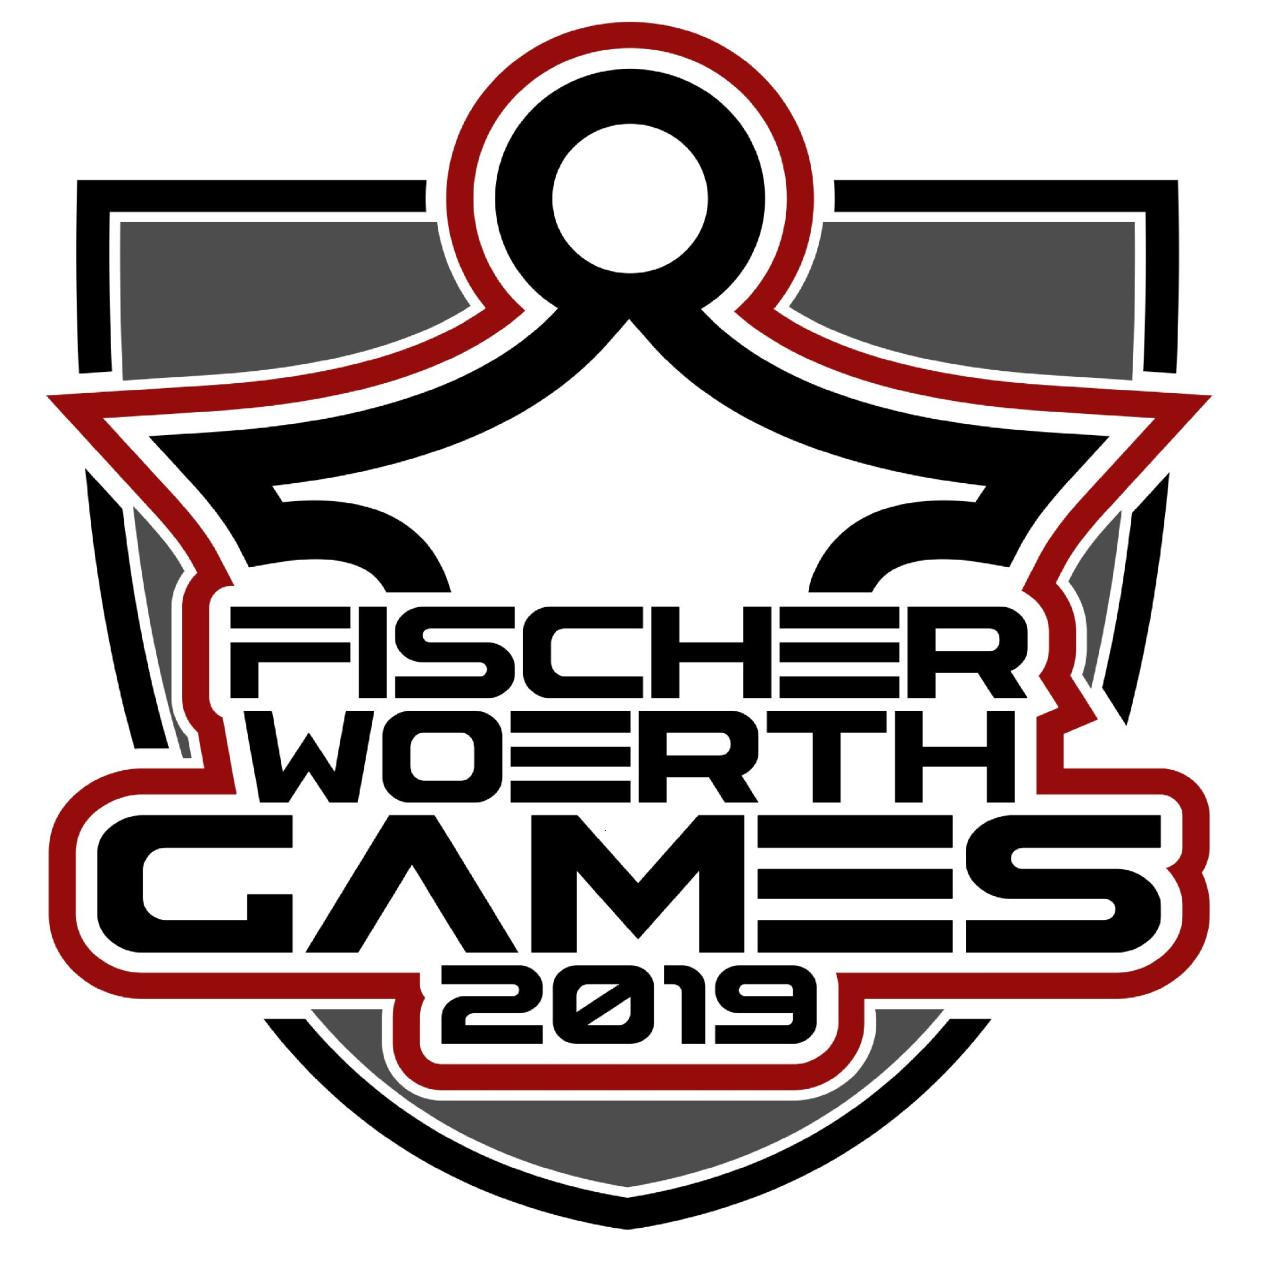 Fischerwoerth Games Logo